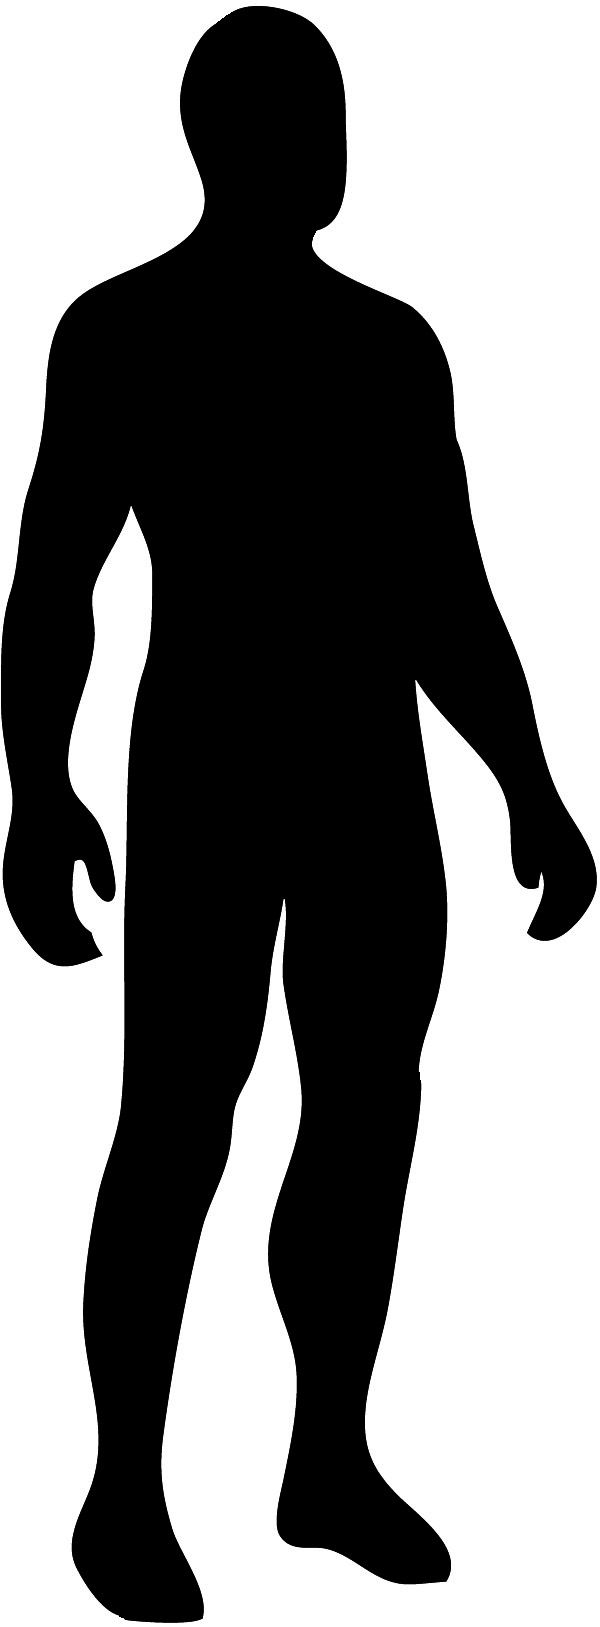 600x1627 Human Silhouette Clipart Stams Amp Stencils Amp Masks